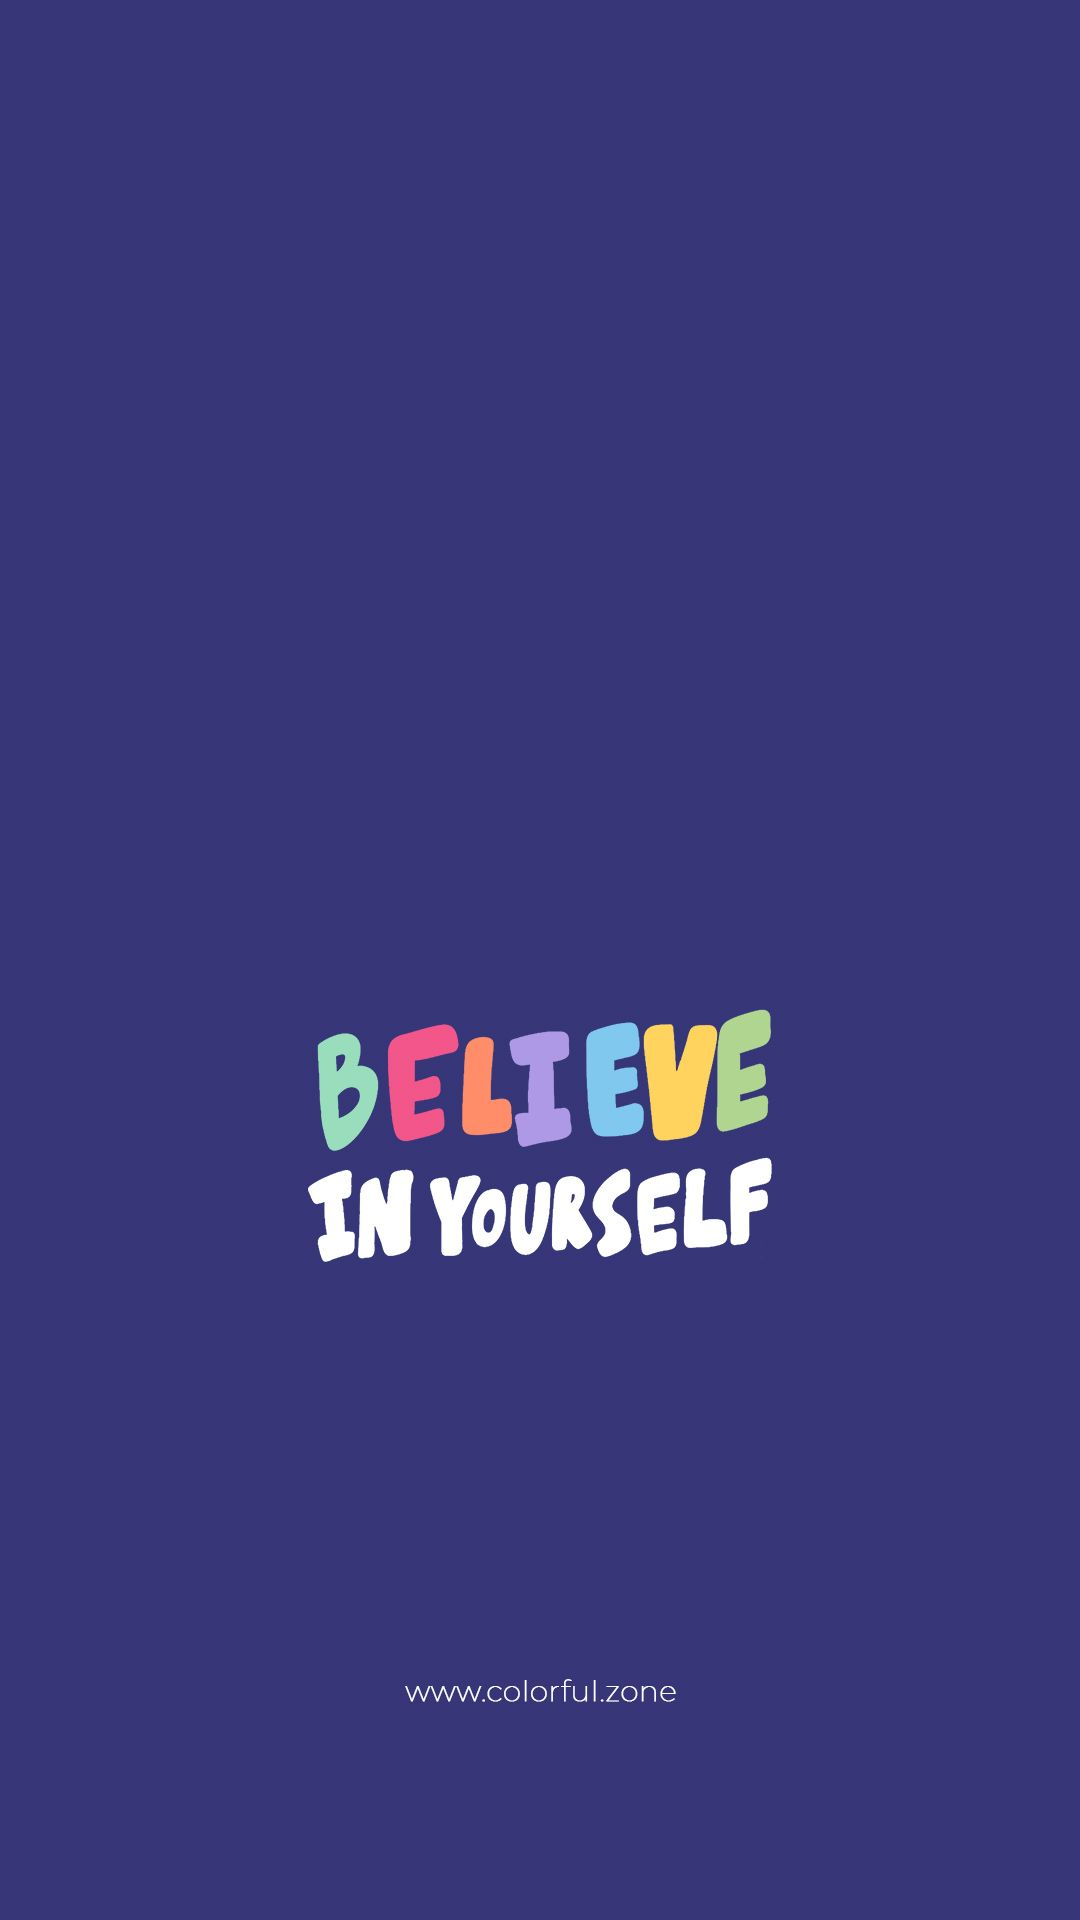 Free Colorful Smartphone wallpaper - Believe in yourself